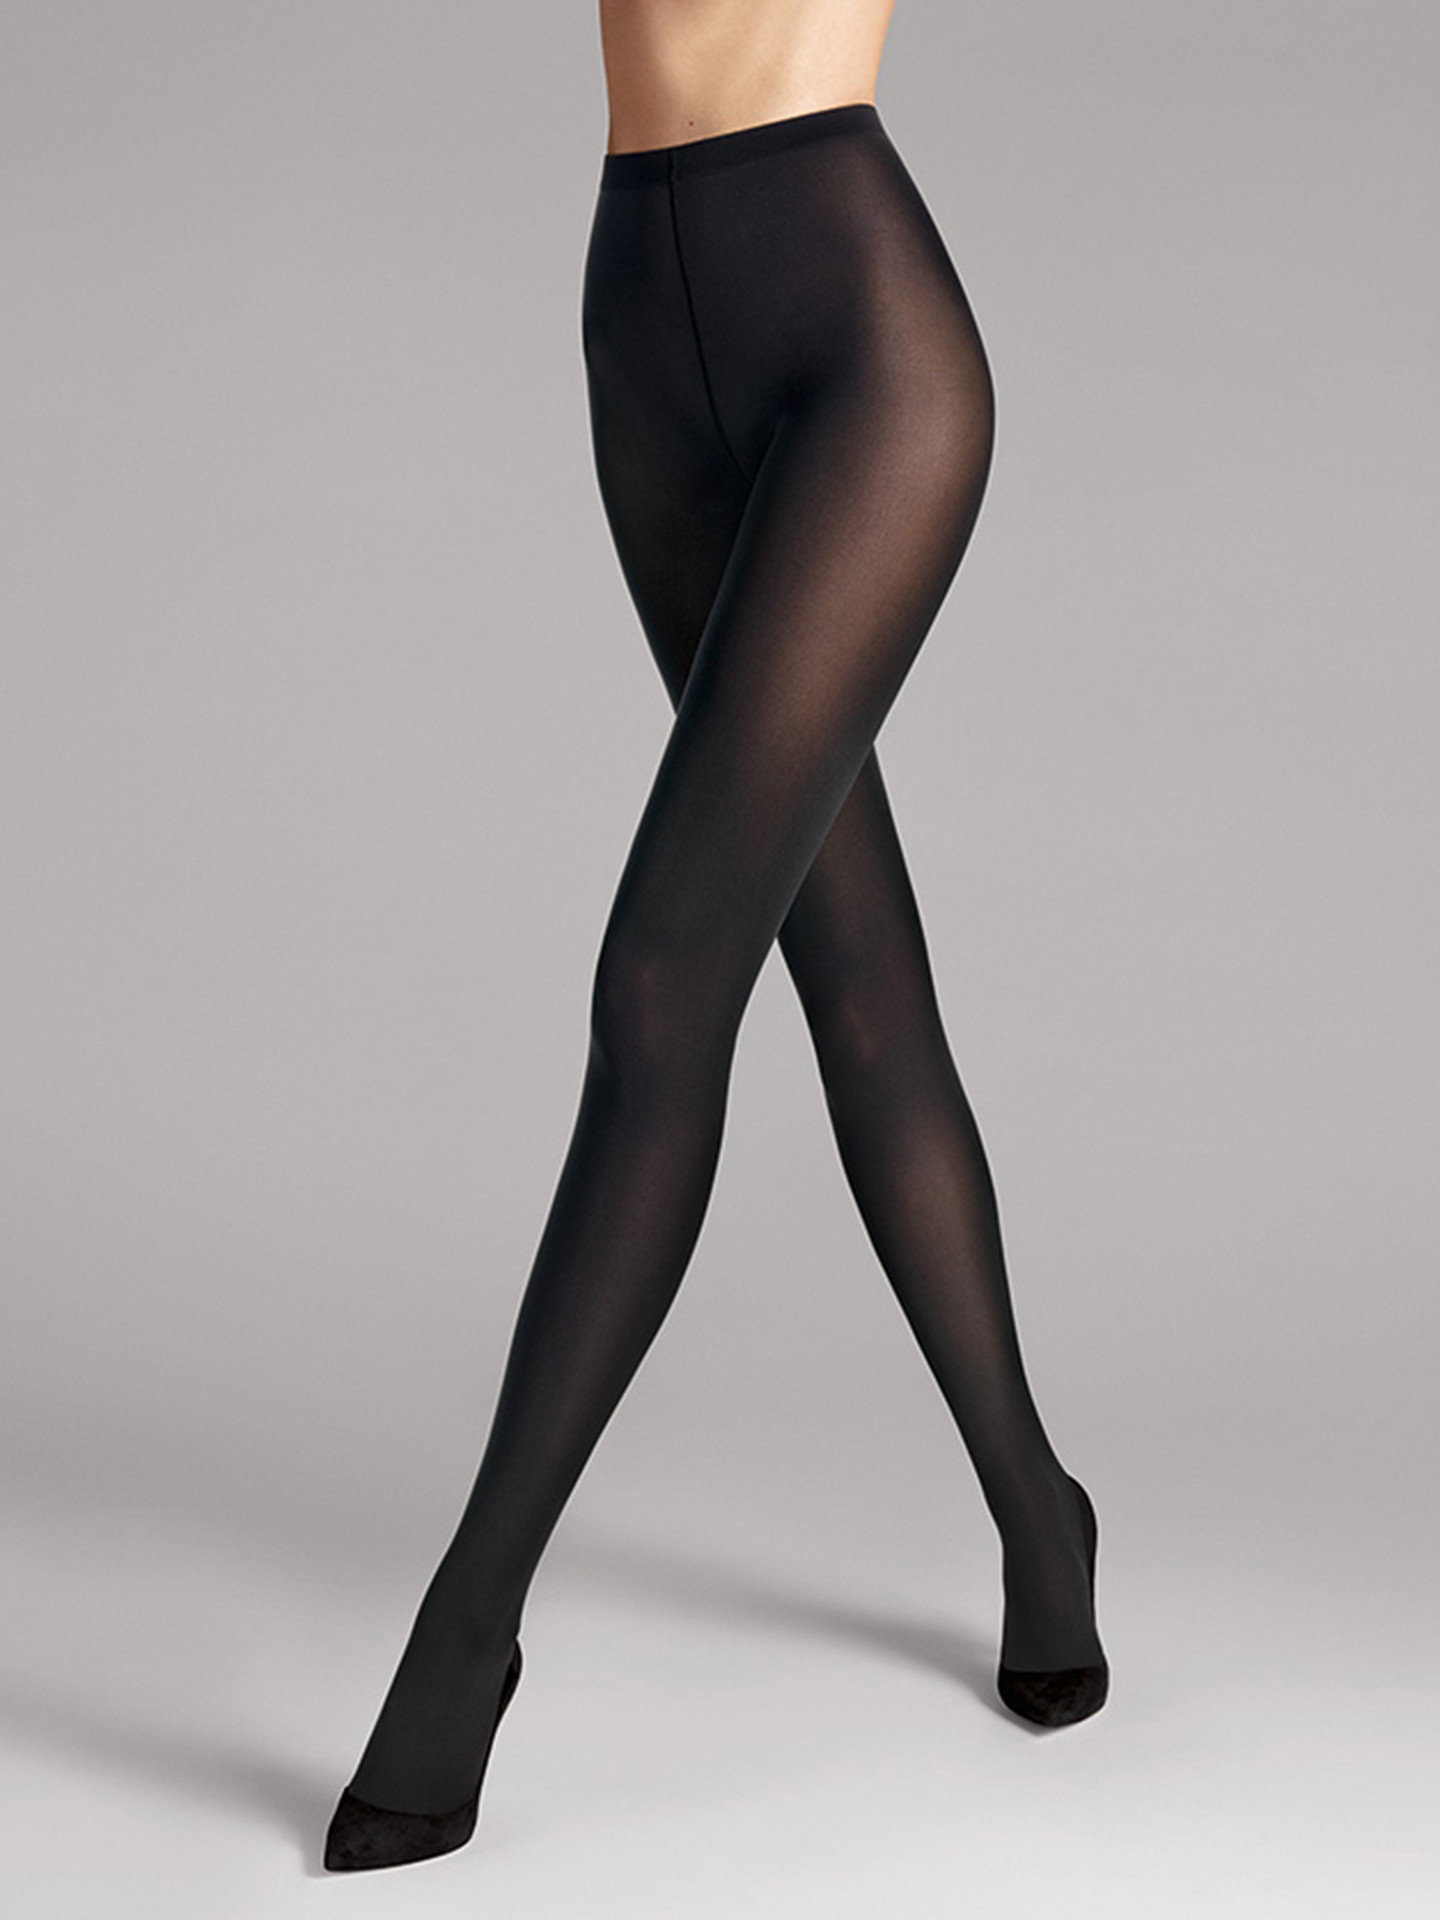 WOLFORD 18535 Opaque 70 Tights